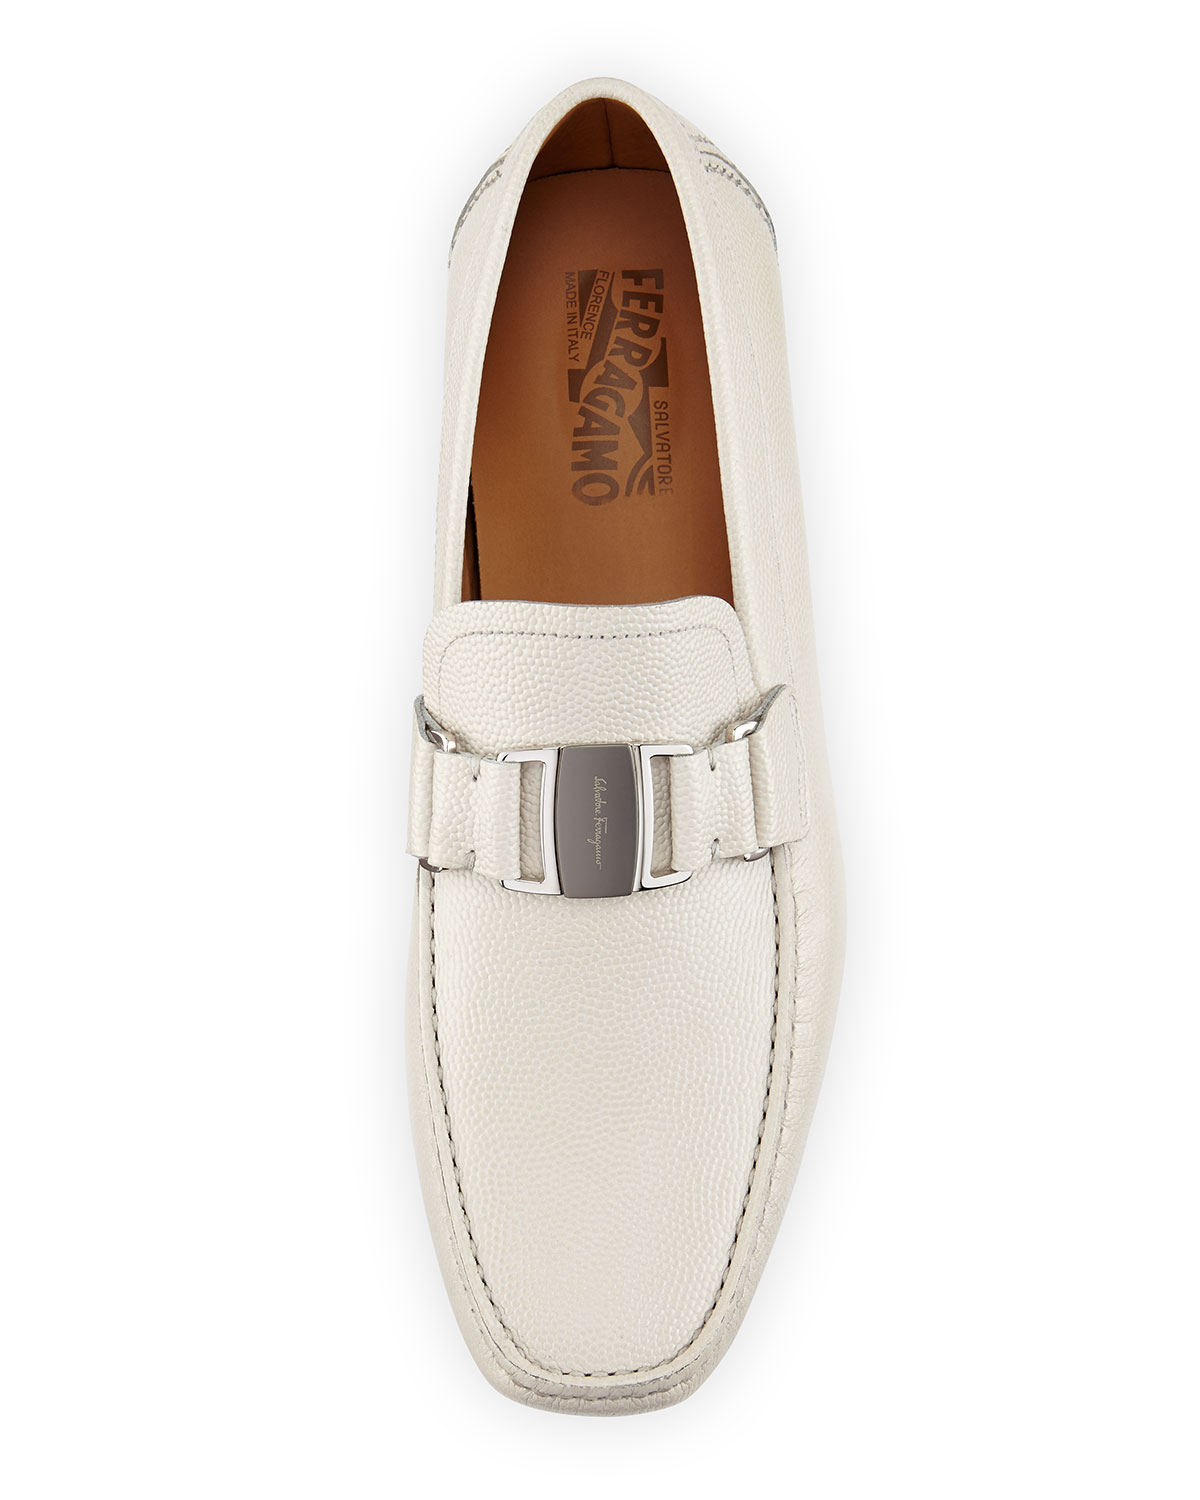 White Ferragamo Driver Shoes